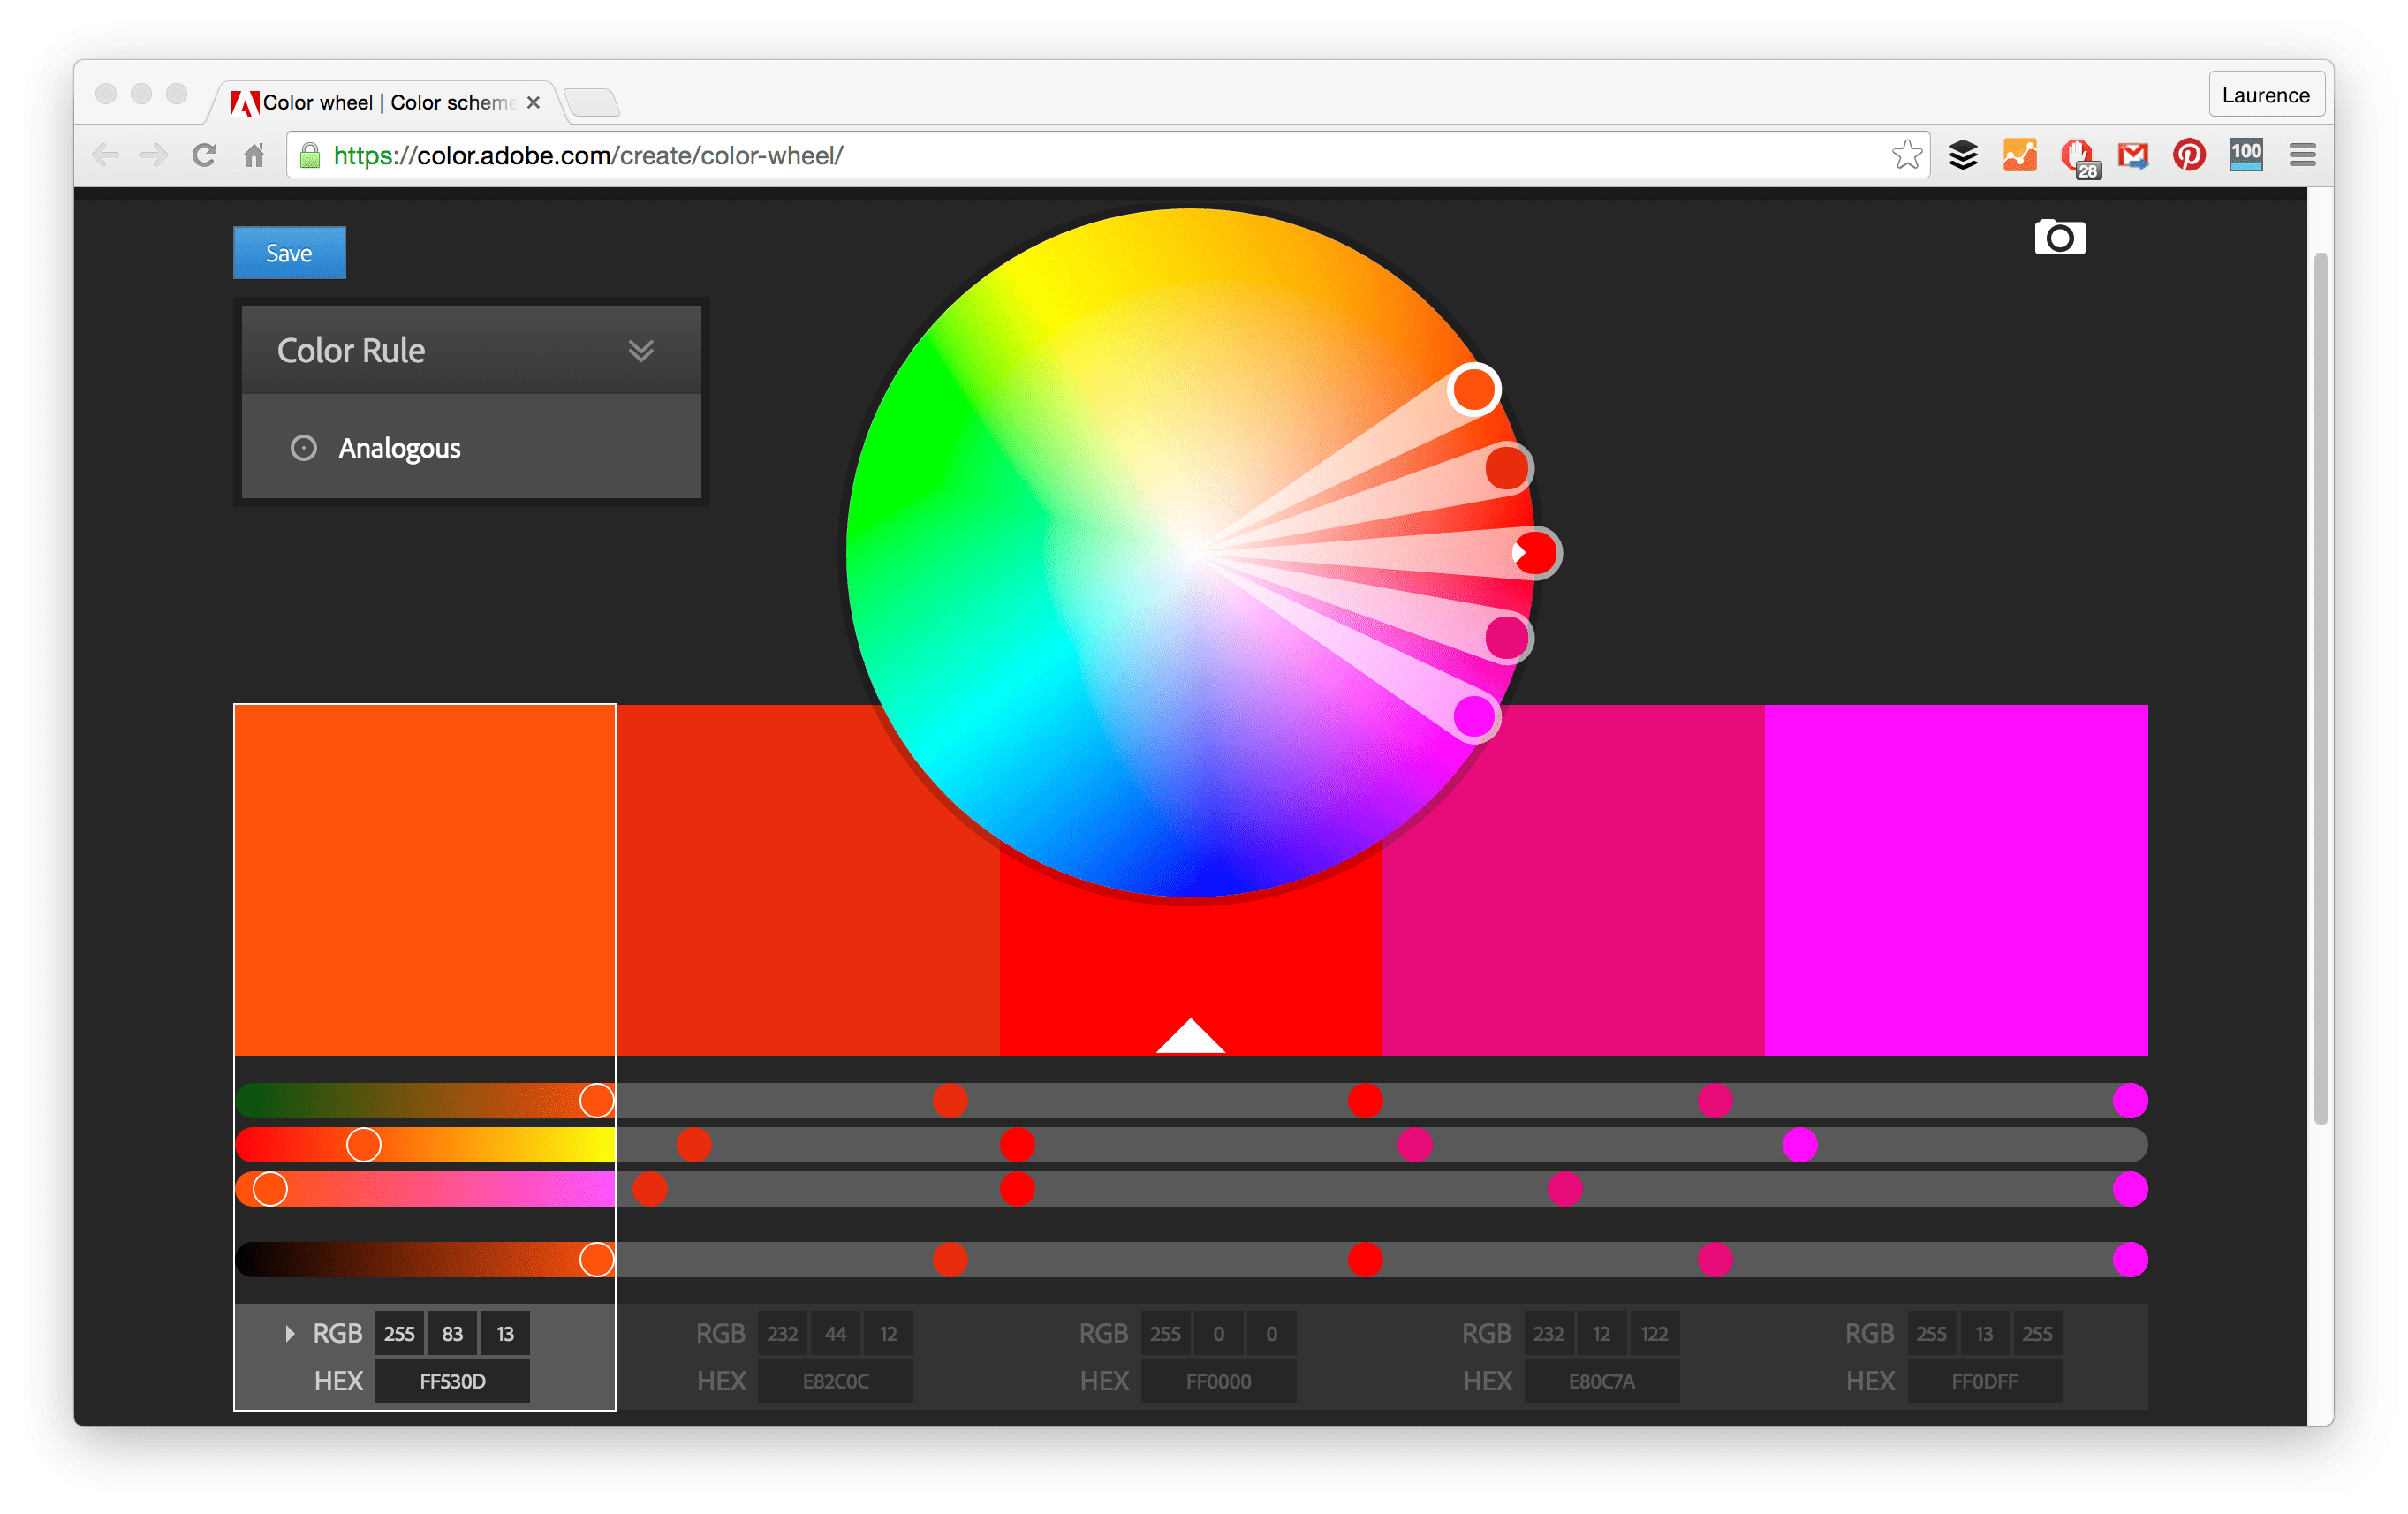 Color theory online games - Adobe Color Wheel